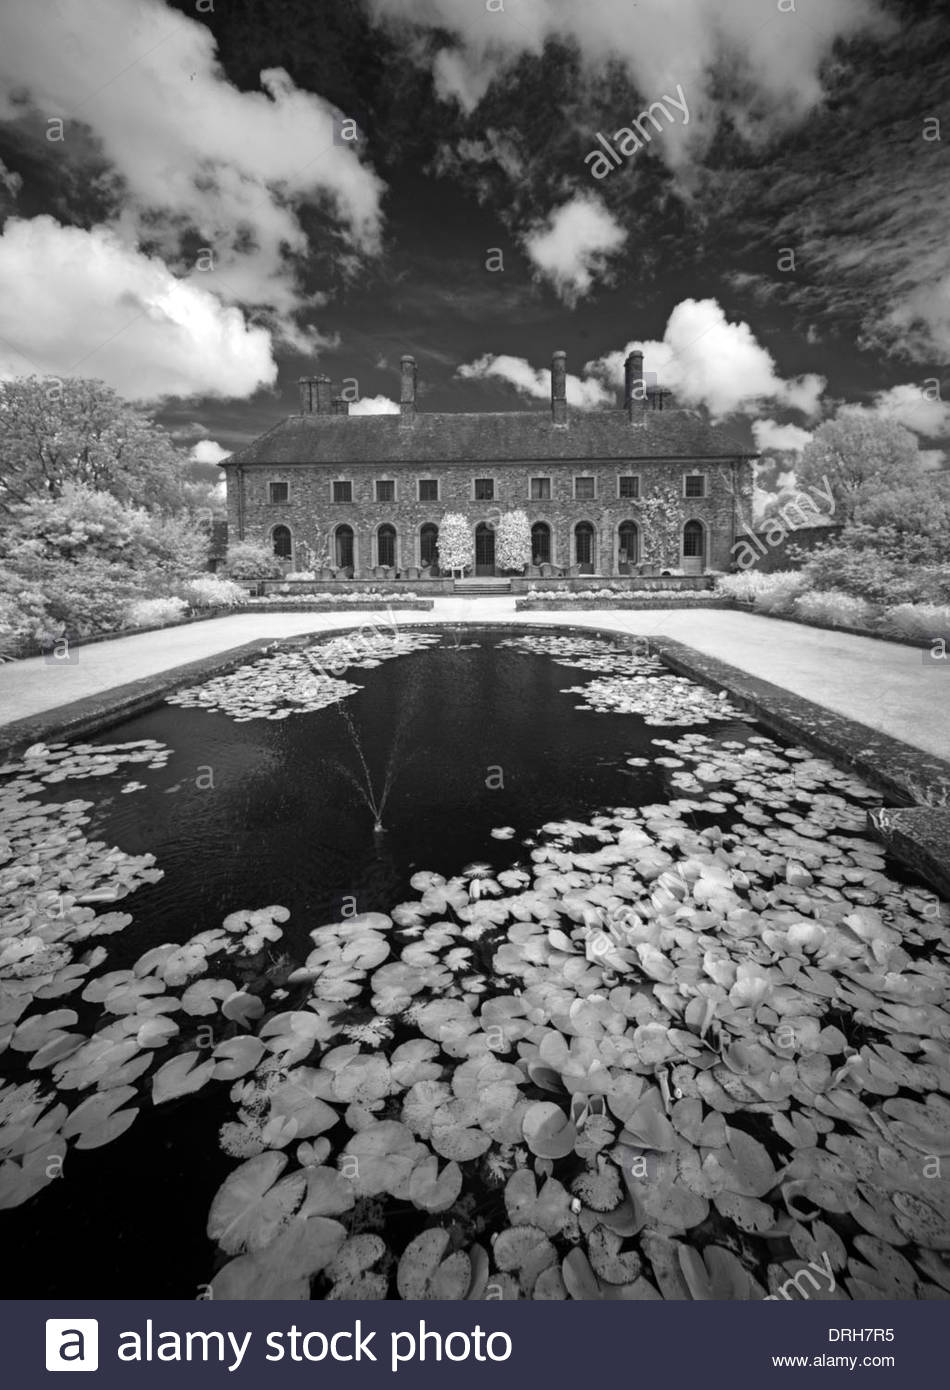 Lake,mono,black,white,black and white,black & white,water,drama,dramatic,cloud,clouds,Barrington,Court,Country,House,Infra,red,monochrome,NT,Somerset,England,UK,National,Trust,National Trust,lilly,lillies,summer,United Kingdom,beautiful,beauty,boundary,building,clouds,country,countryside,GoTonySmith,dark,day,infrared,IR,outdoor,scenic,trees,vintage,book,cover,bookcover,Buy Pictures of,Buy Images Of